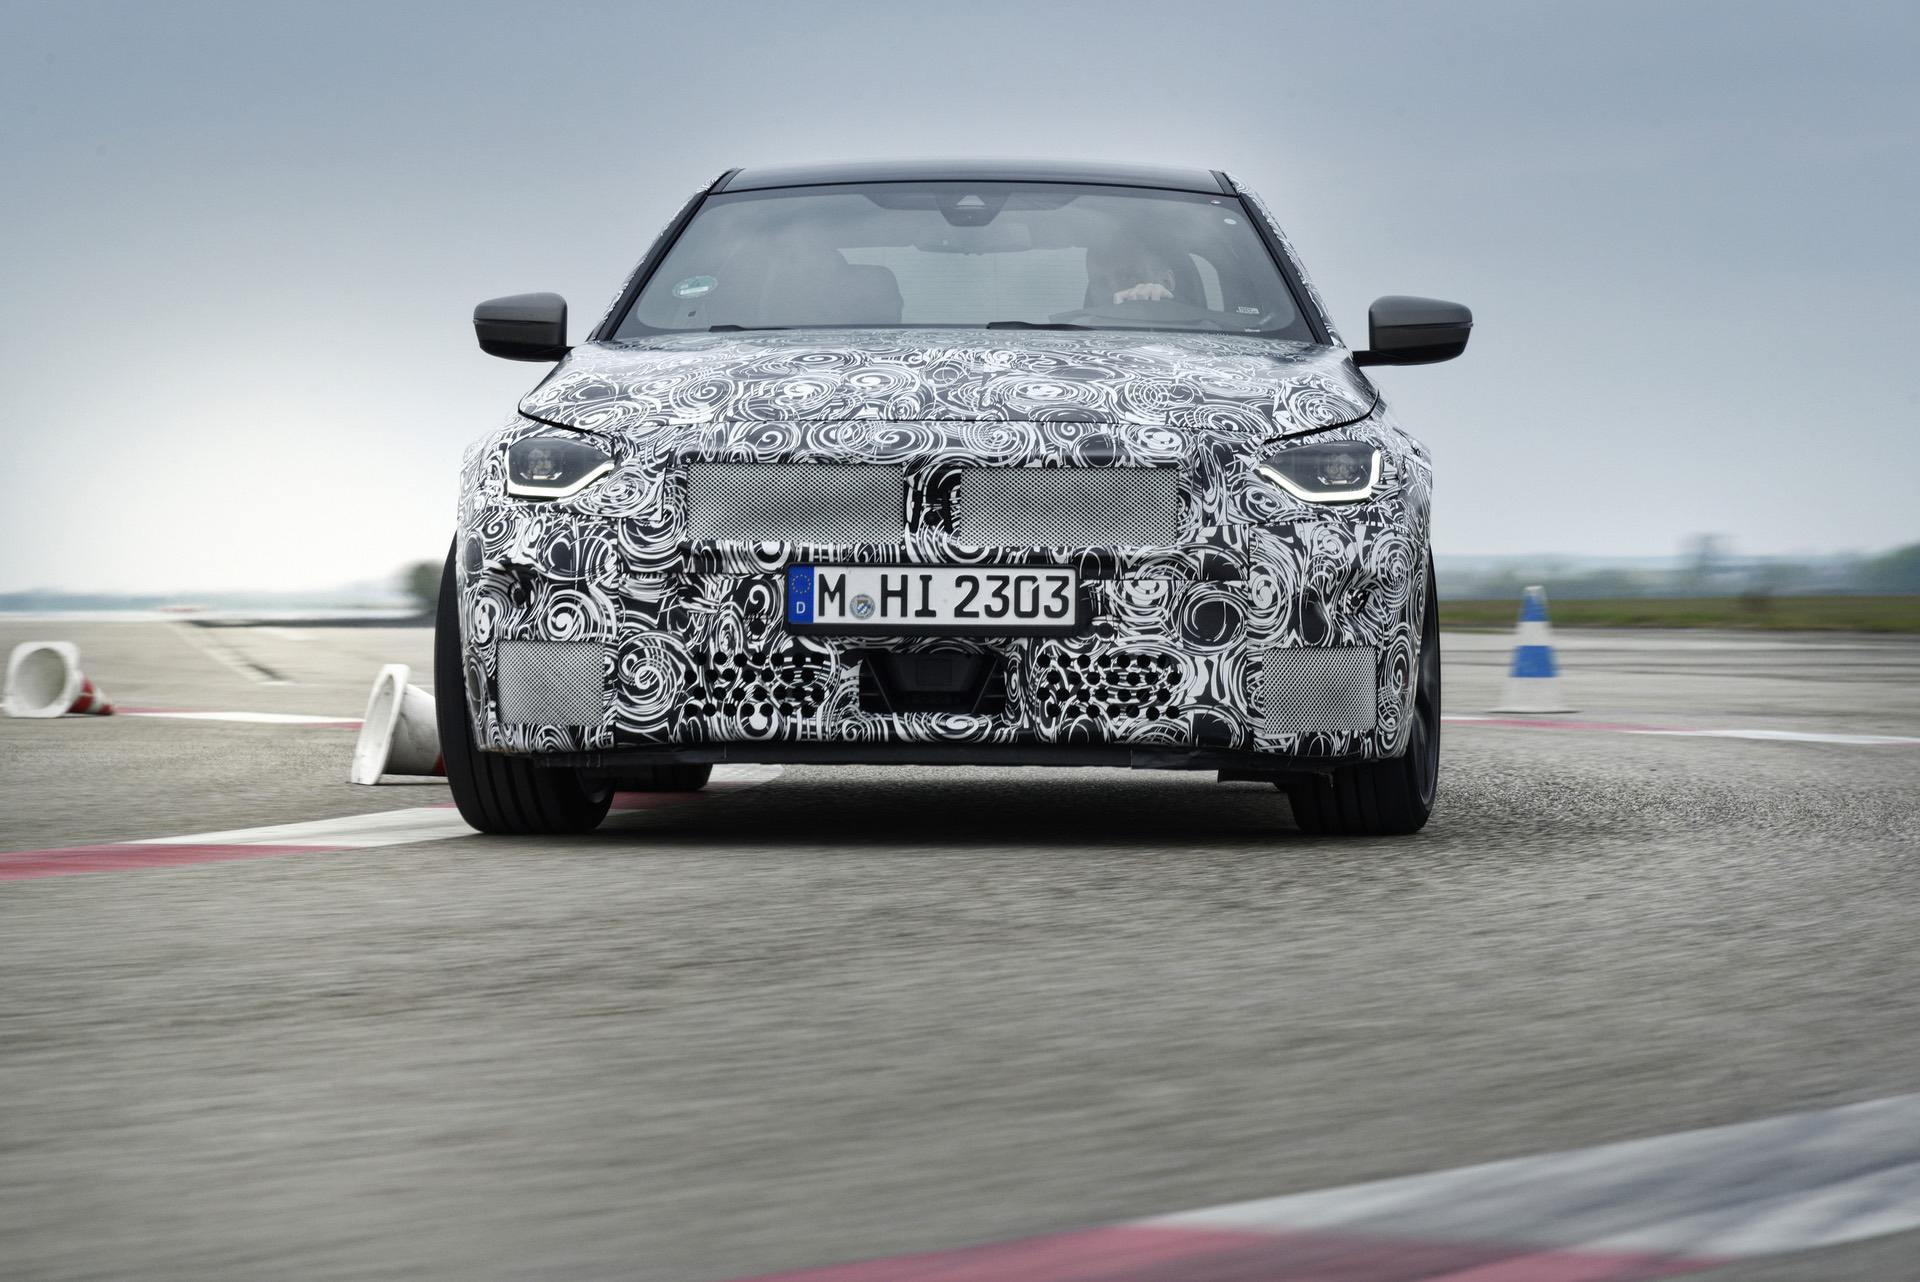 2022 BMW 2 Series Coupe – More photos of the prototype car